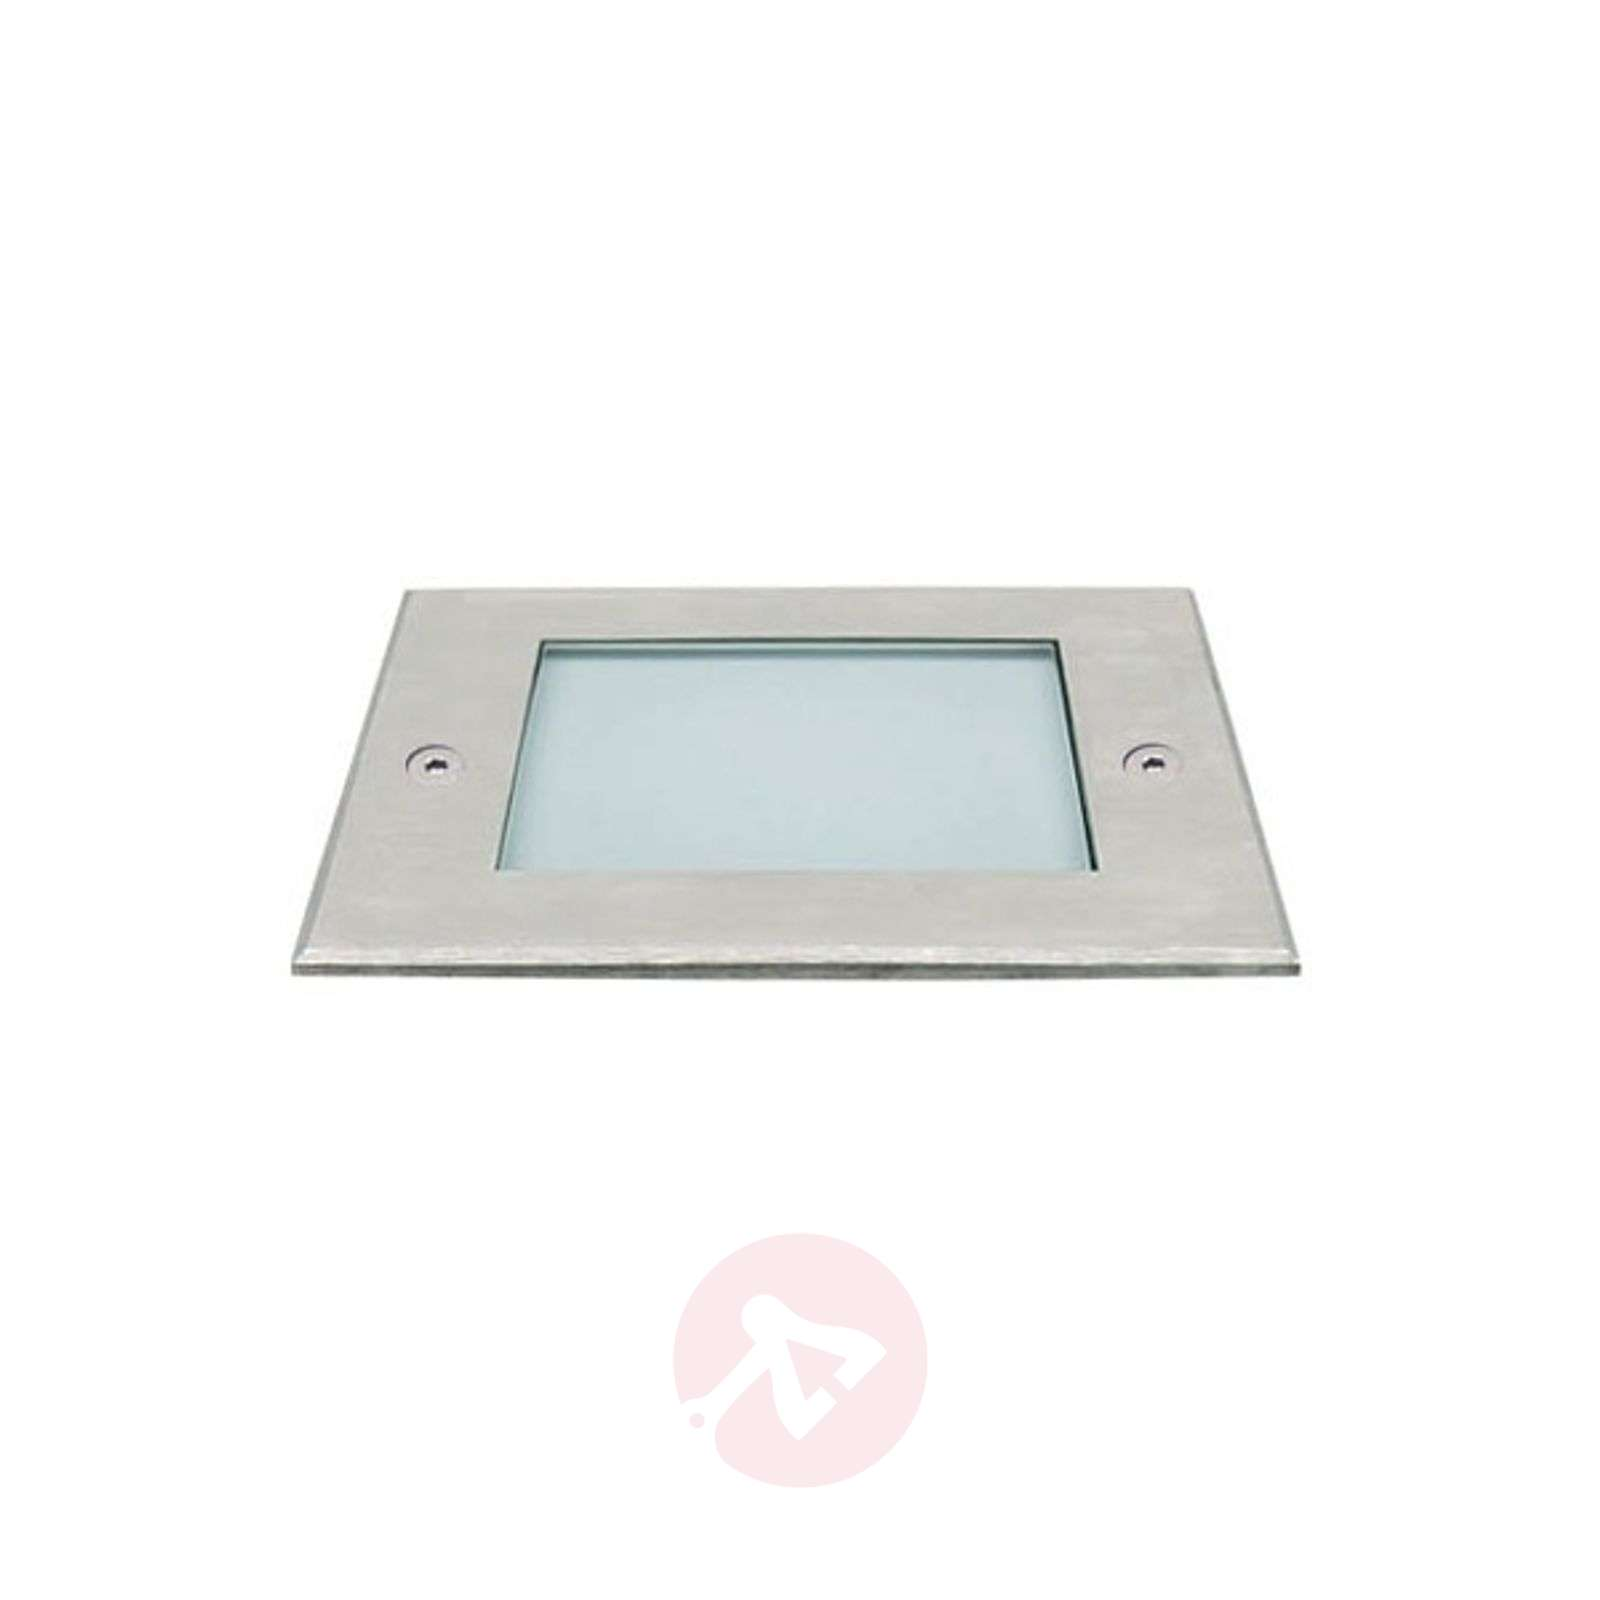 Spot LED encastrable sol Square II-2501256X-01